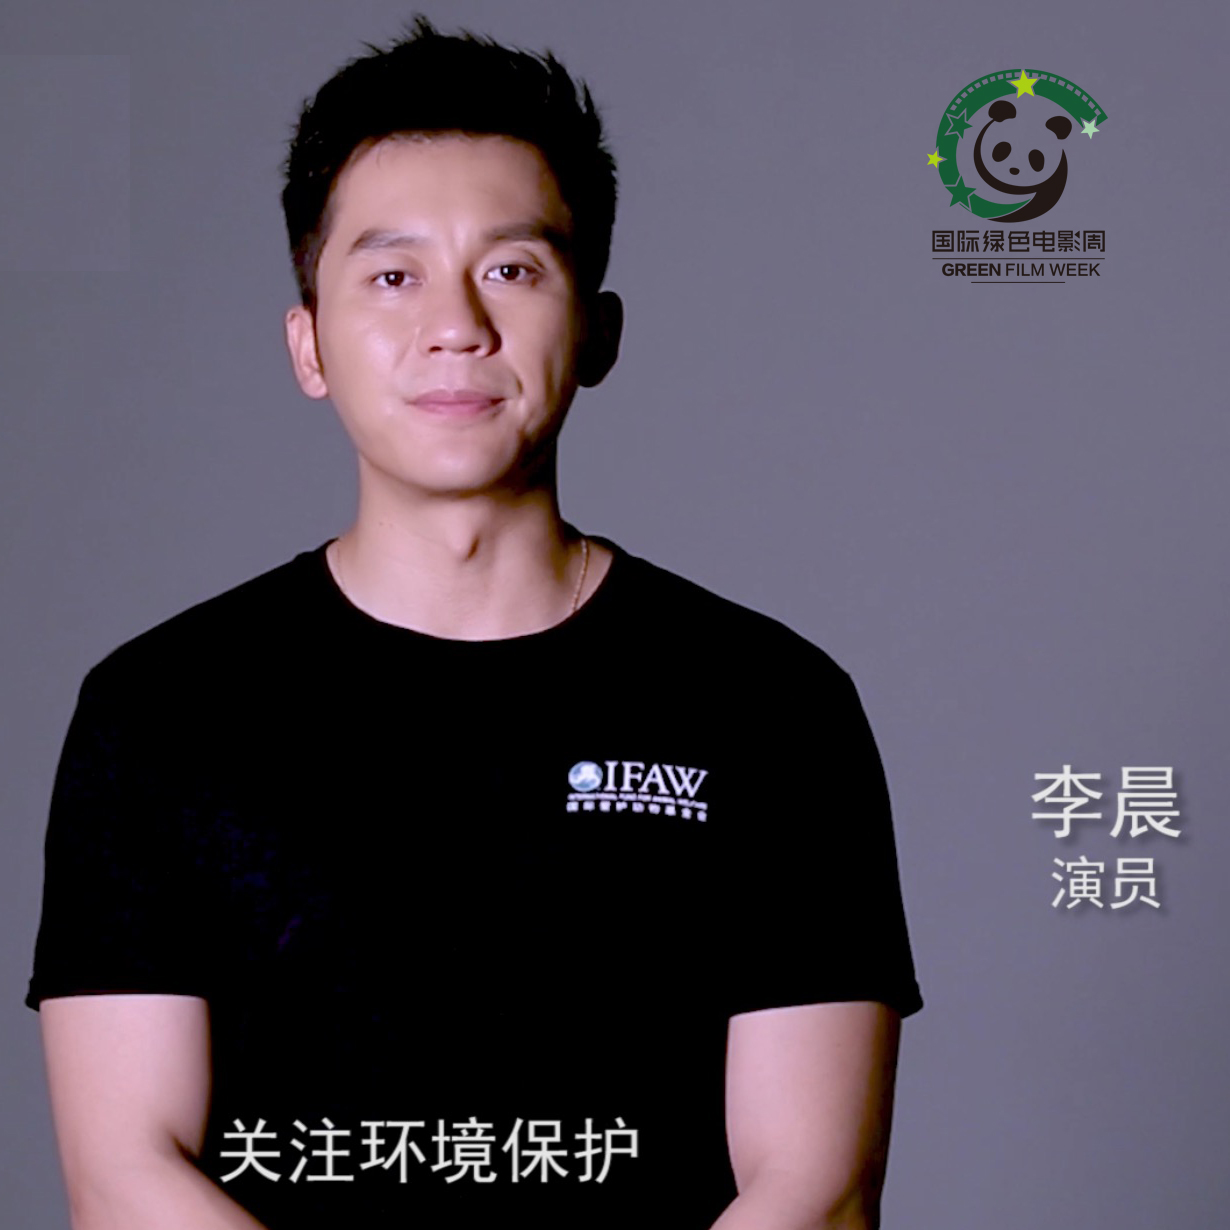 The benediction to  International Green Film Week from China stars